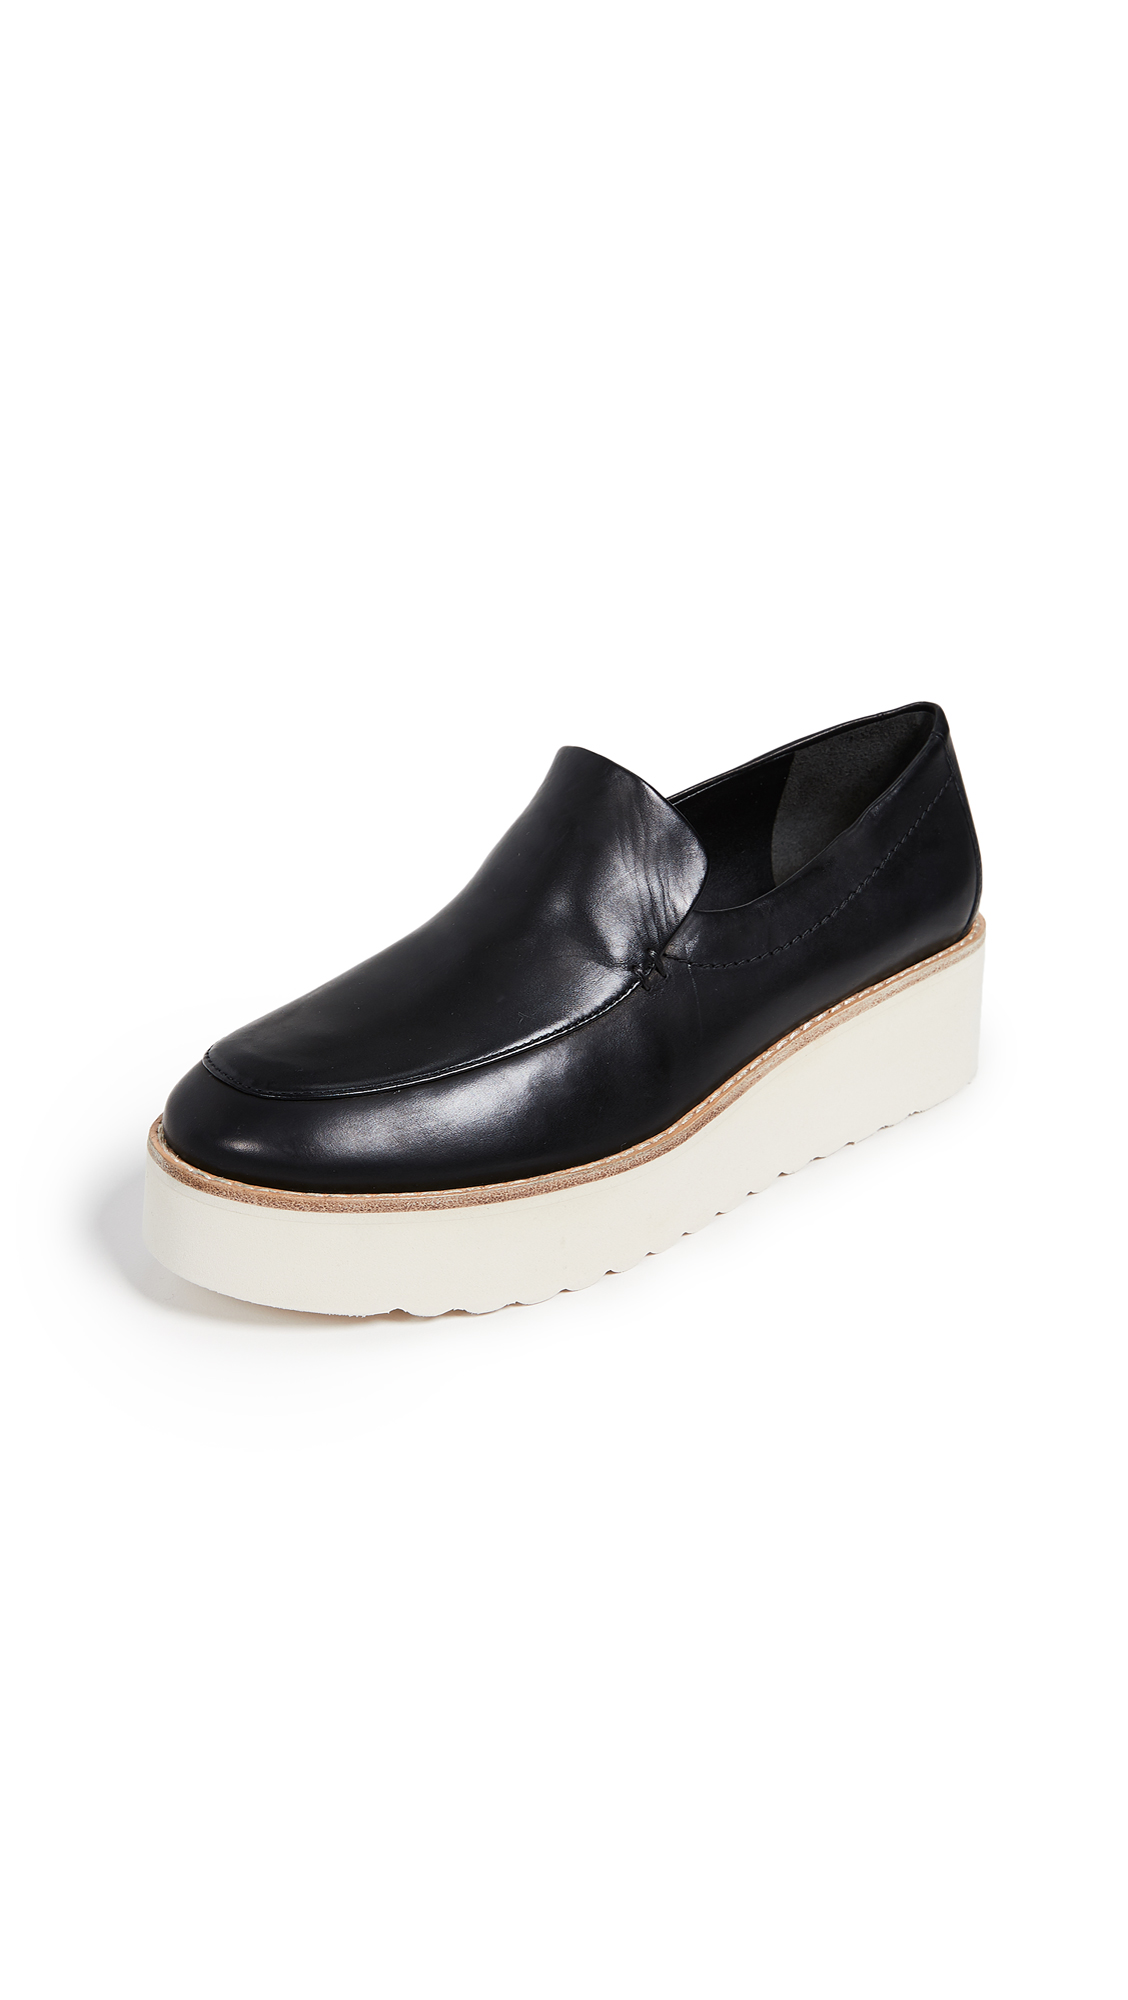 Buy Vince Zeta Platform Loafers online, shop Vince